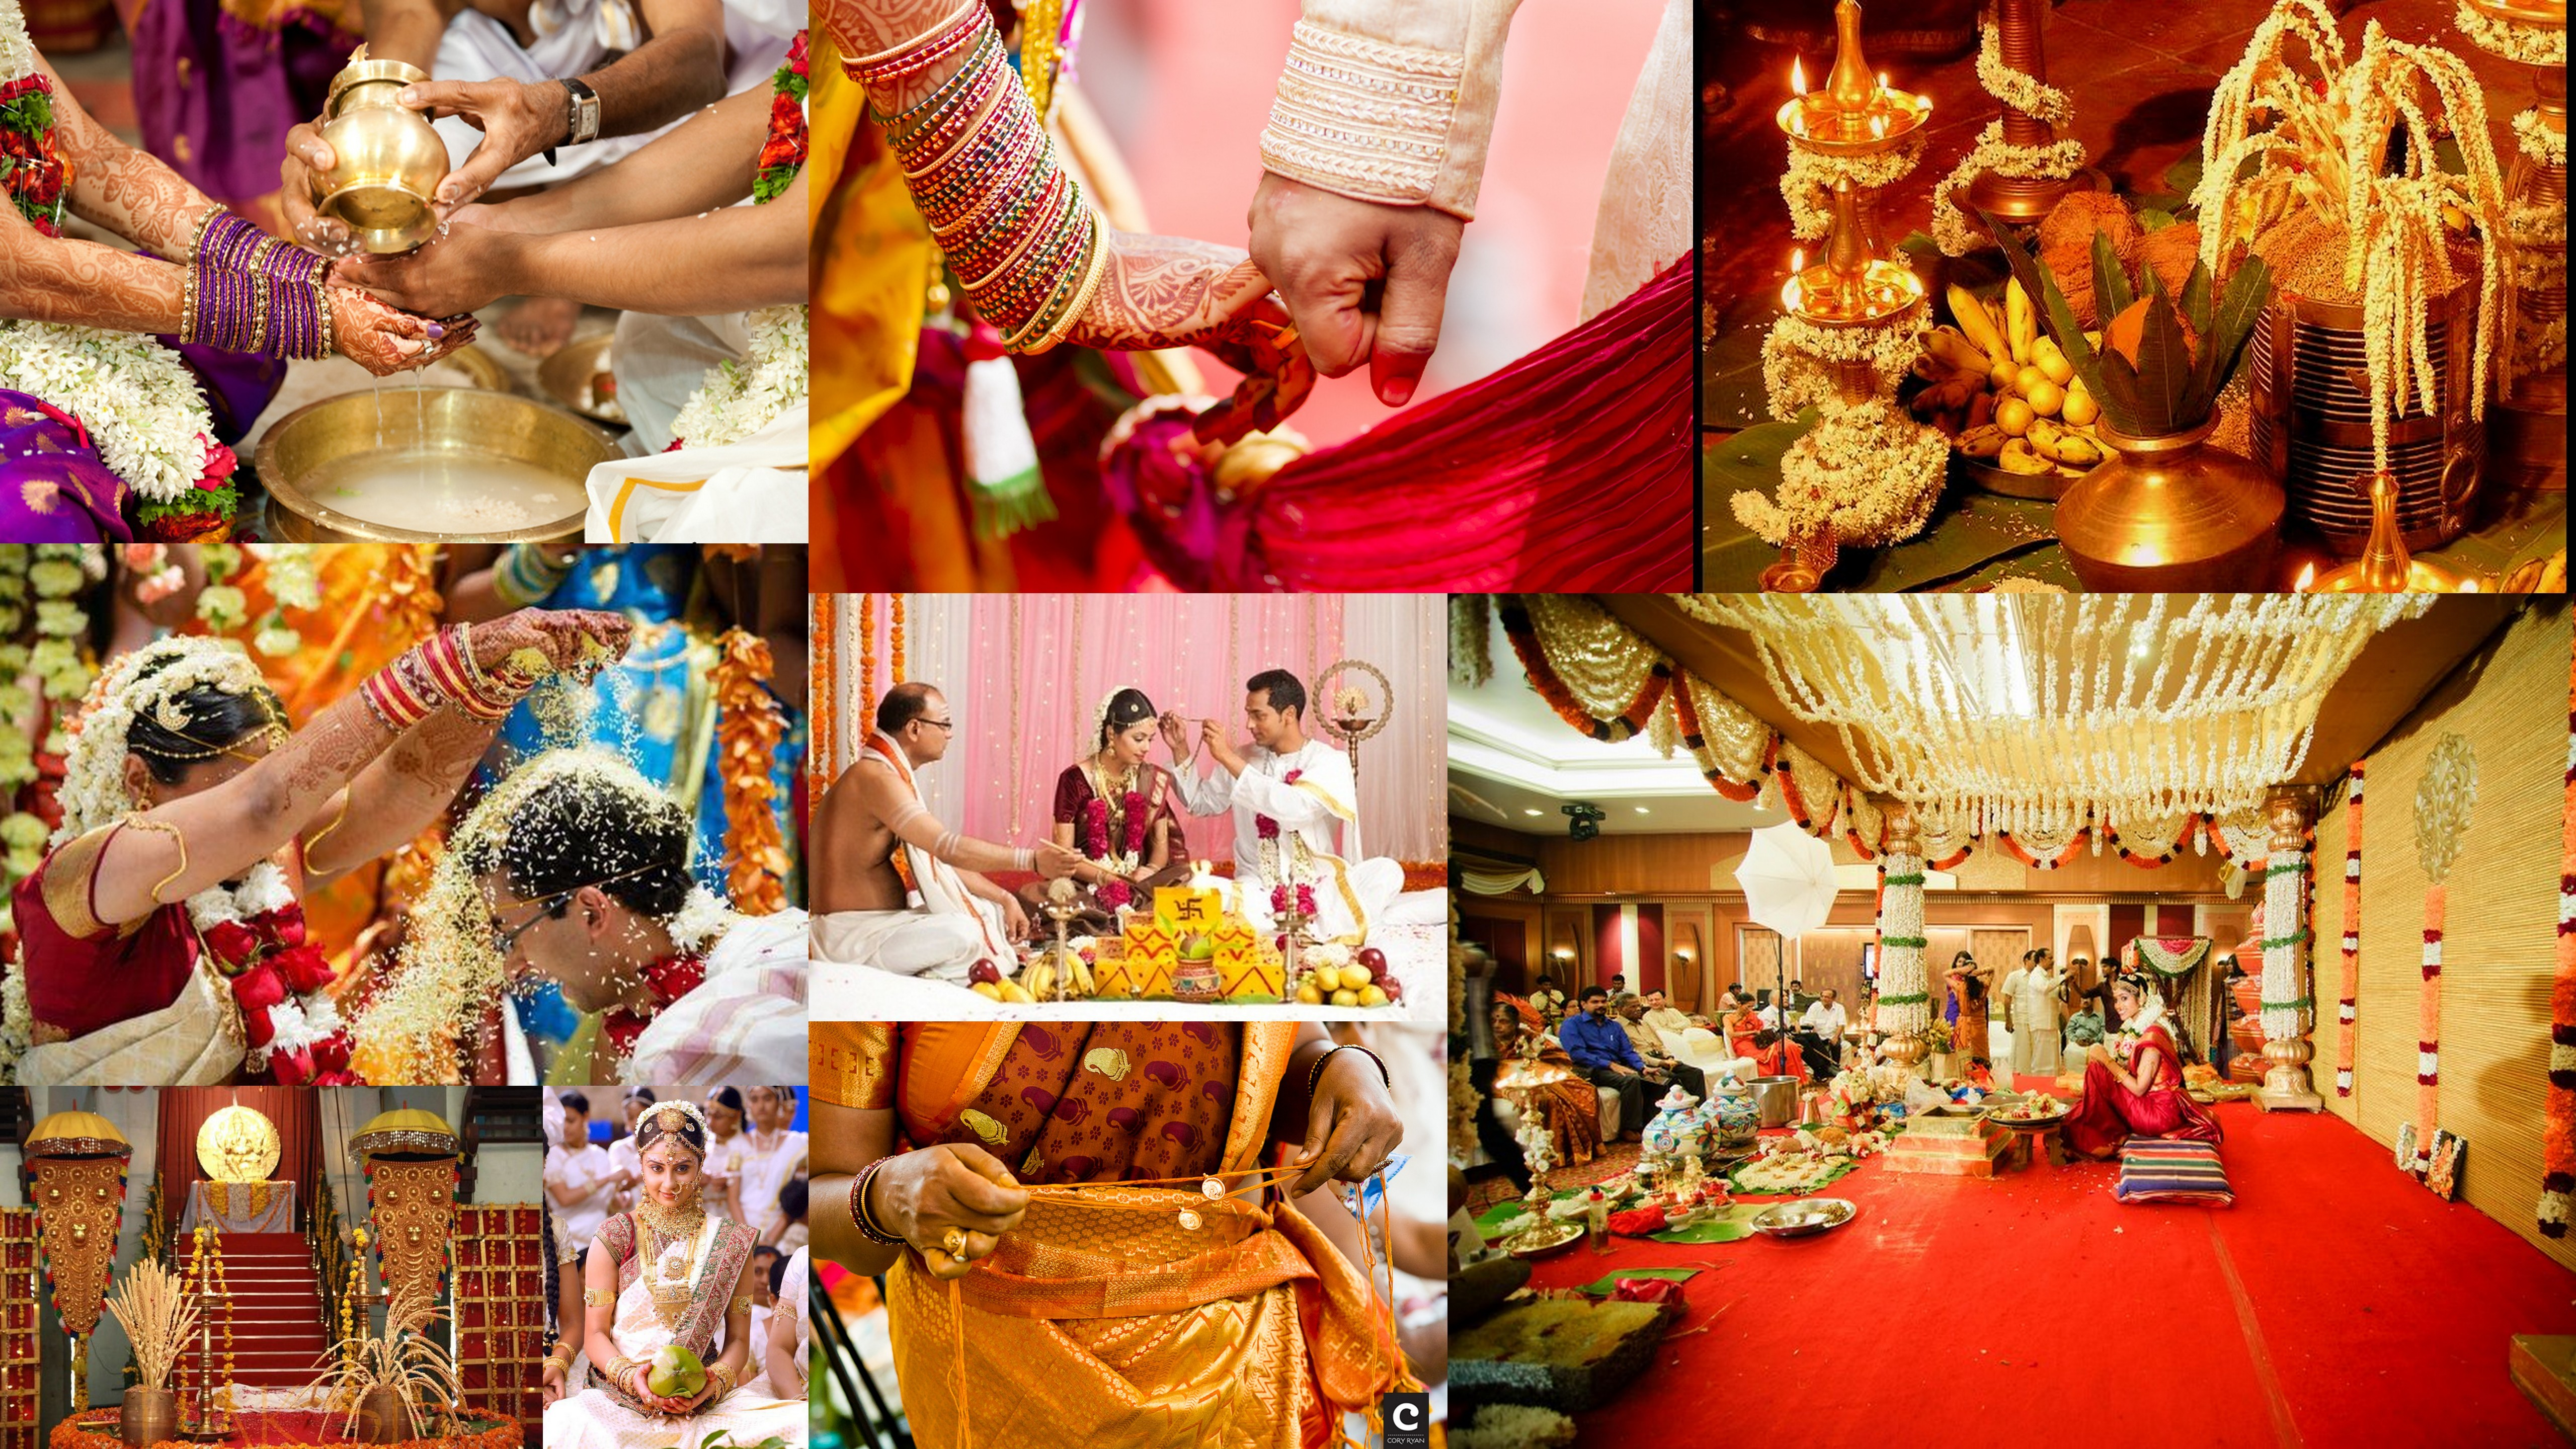 marriage and culture Marriage is also a method in which cultural tradition is passed on to the children of the participants although the marriage relationship is a 'traditional' means for shaping a child's standing and position in society, nontraditional roles also serve as a valid means of raising children within a cultural context.